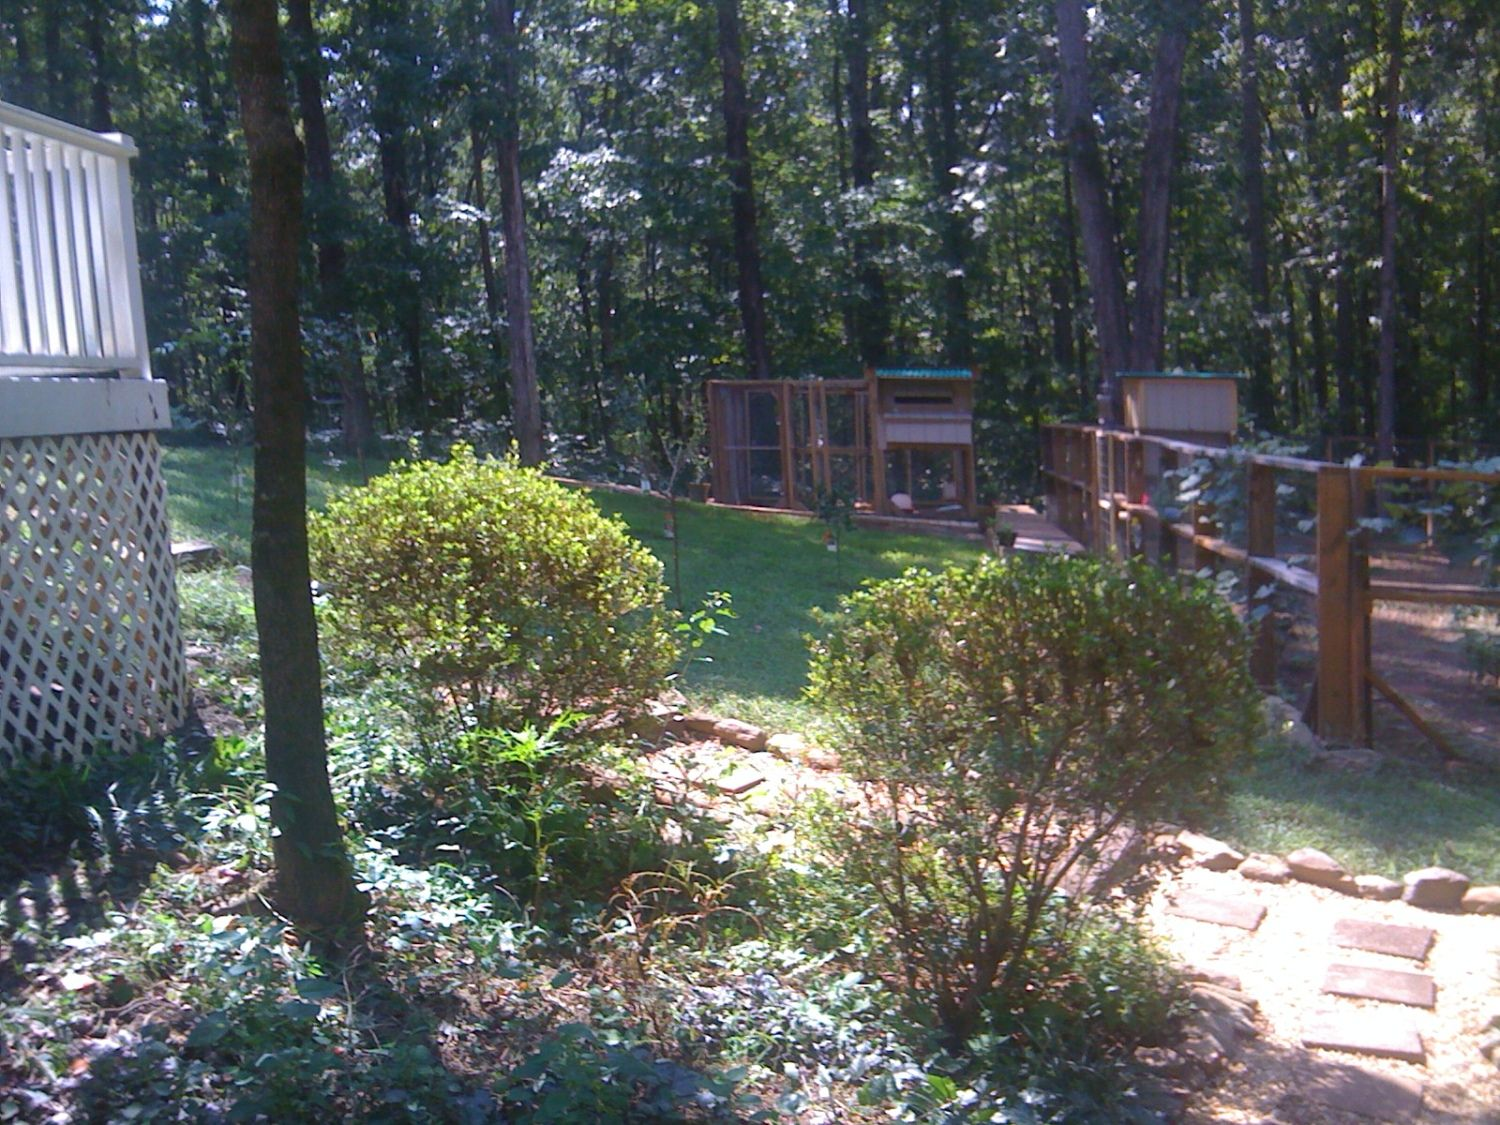 carzy yankee in georgia design of a chicken coop with a boardwalk